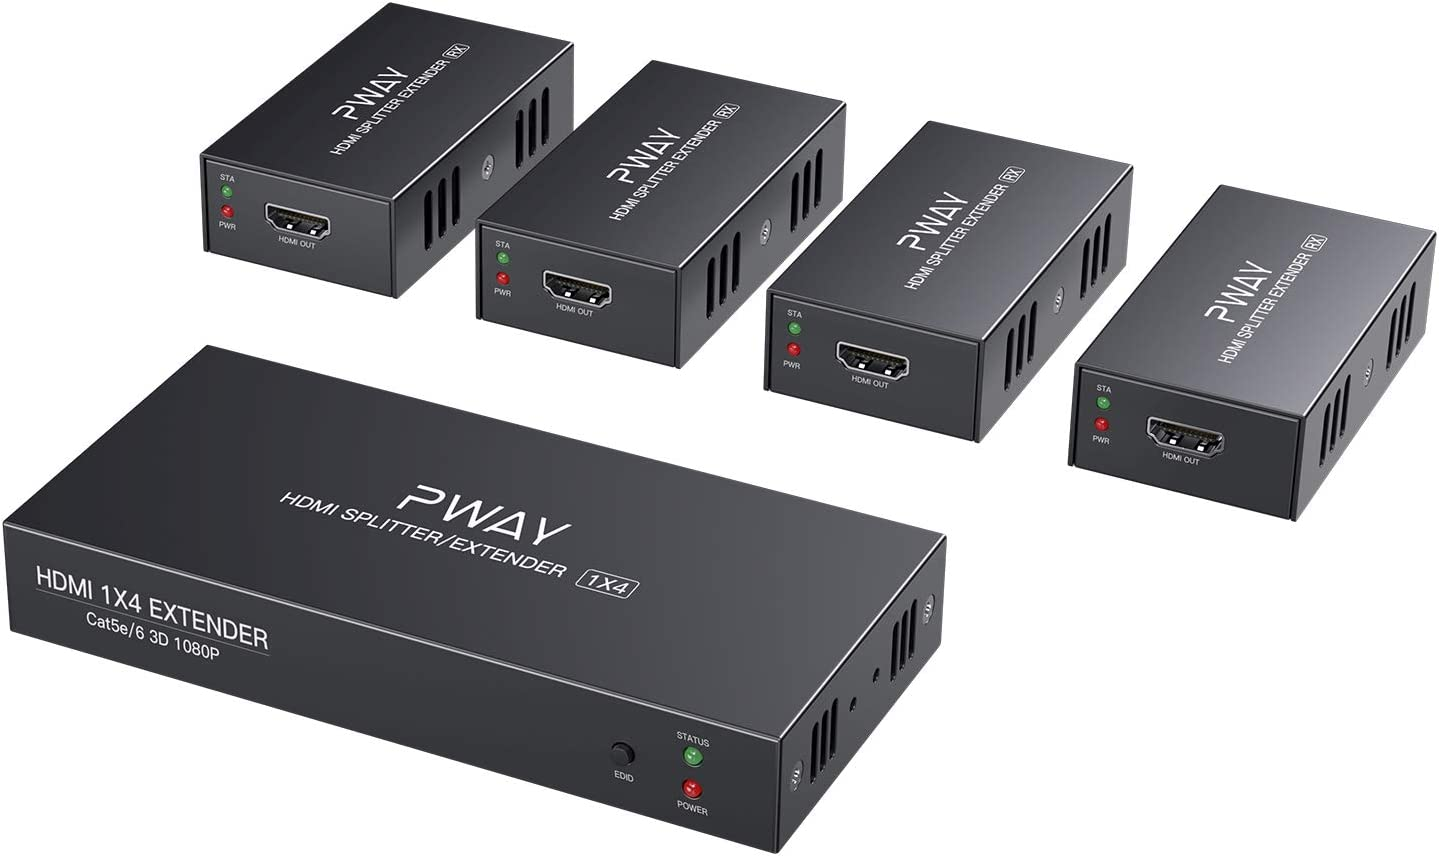 PW-HTS0104 (POC) 1X4 Splitter HDMI Extensor de Divisor Puerto sobre Cat5e/Cat6 Cable Ethernet con Control Sin demora hasta 50m/165ft y Resolución hasta 1080P@60 Hz (1 In 4 out)